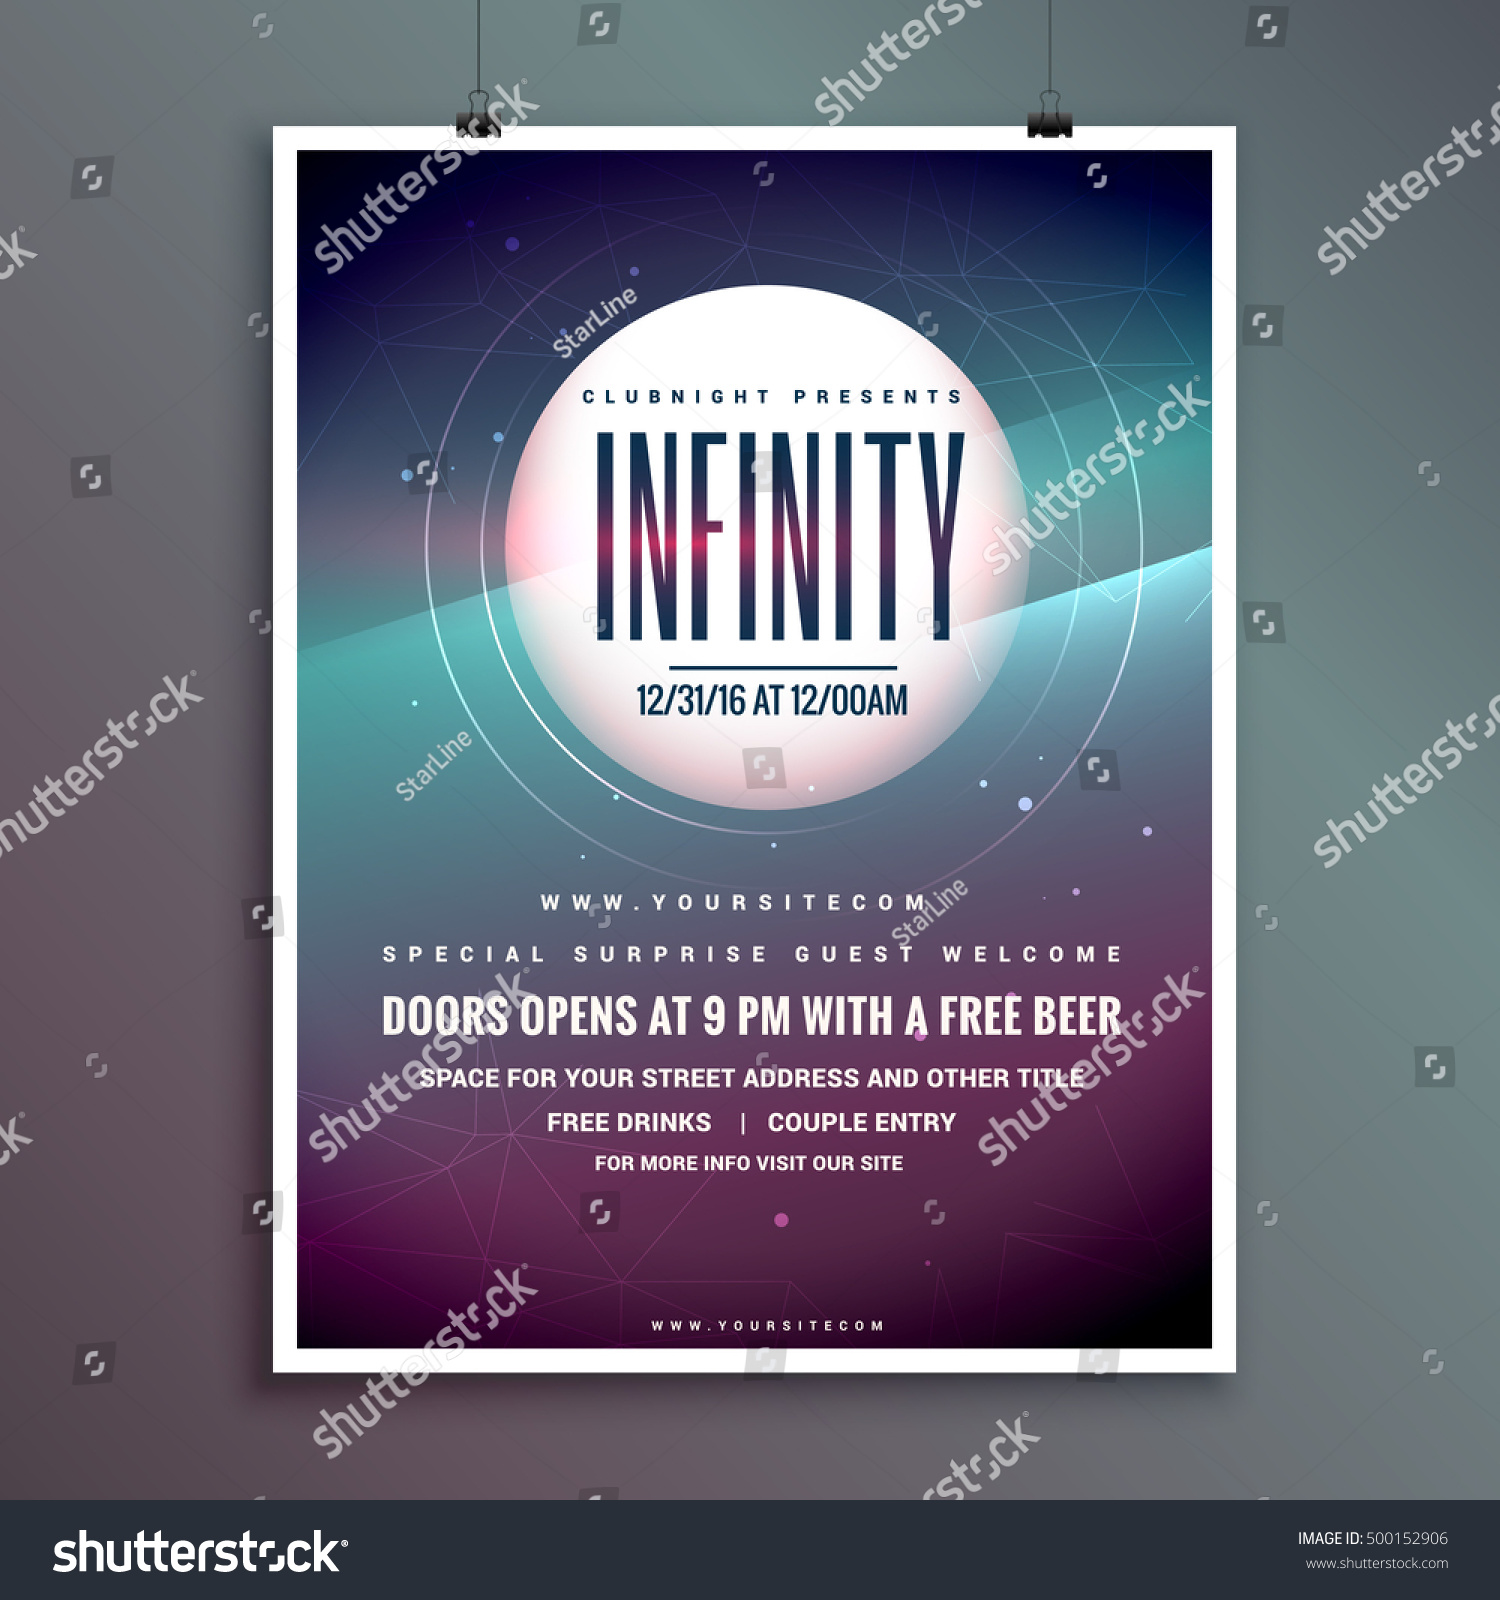 Party Invitation Flyer Template With Colorful Abstract Background